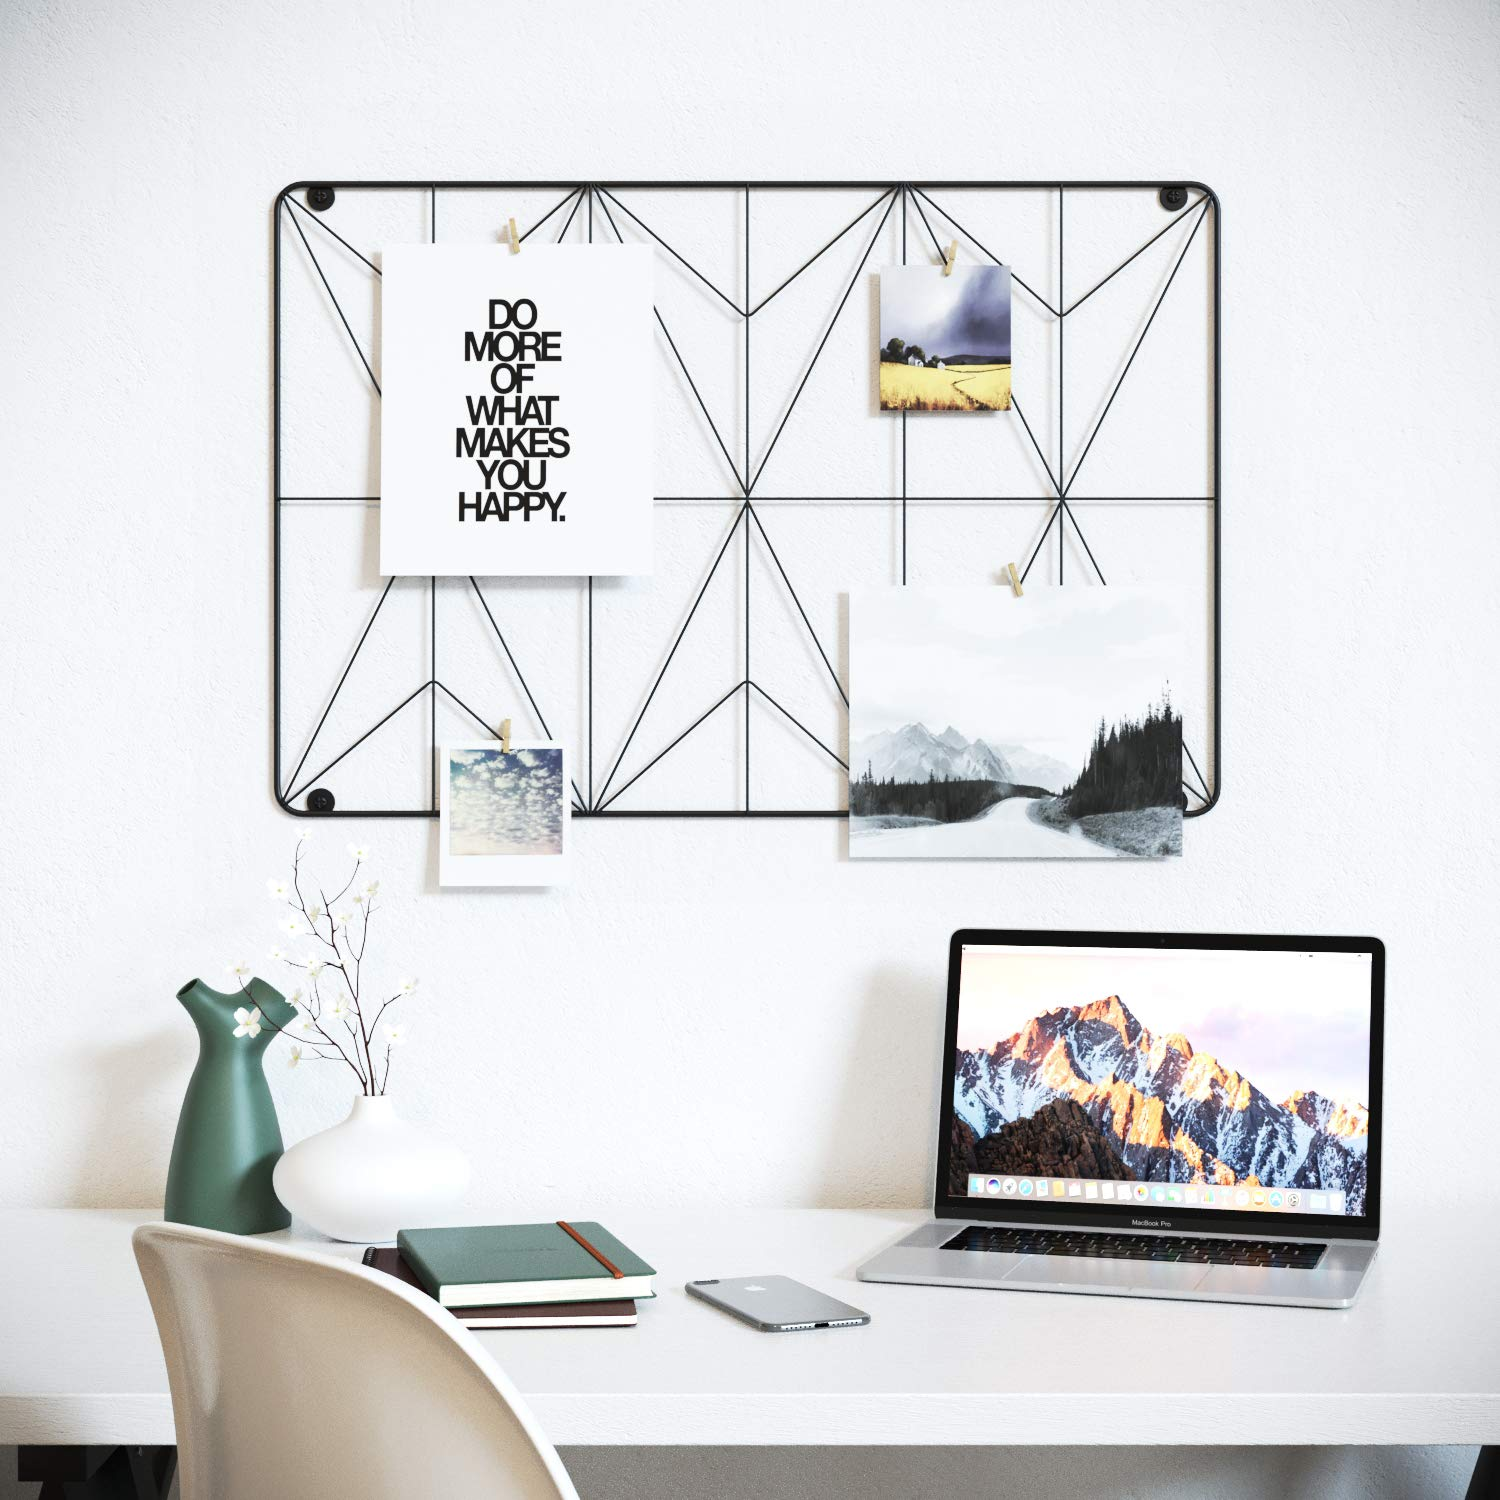 Cevillo Stylish Wire Metal Wall Grid Panel - Perfect as Photo Frame, Office Organization - Black Multi-Functional Wall Storage Display (Black | Rectangle) by Cevillo